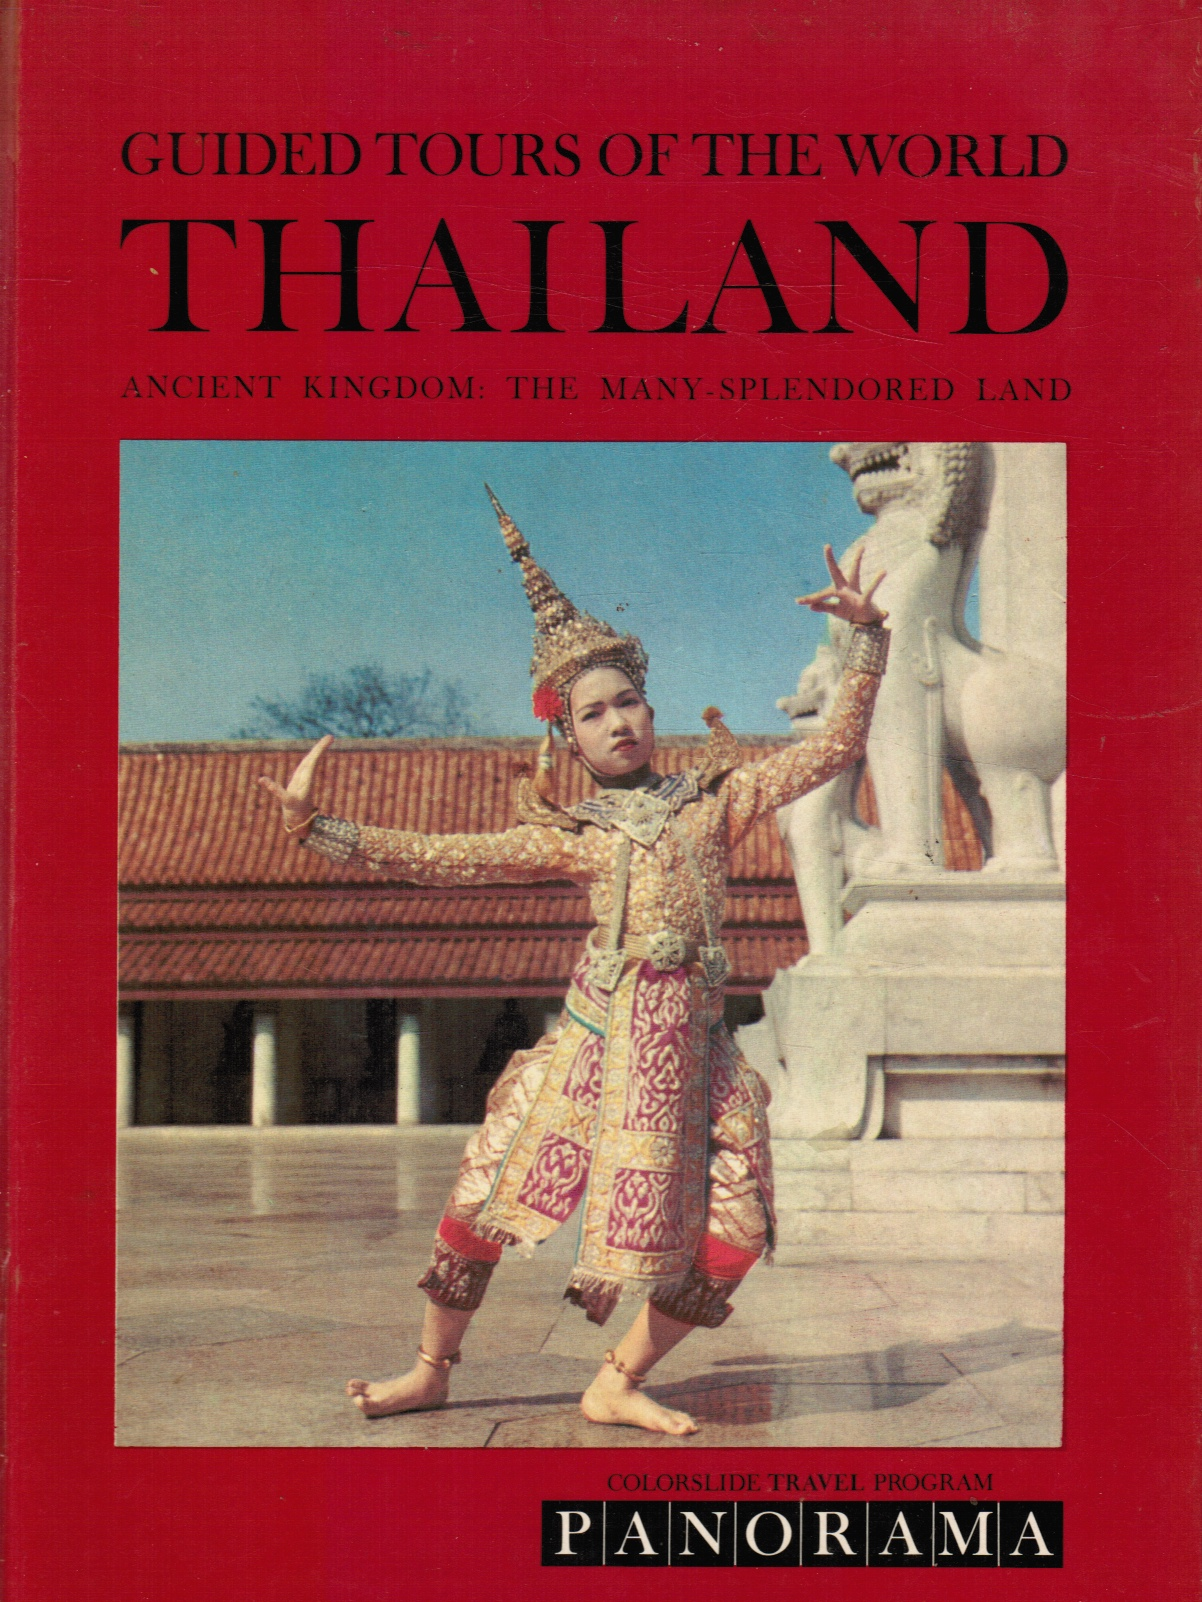 Image for A Colorslide Tour of Thailand: Ancient Kingdom: the Many-Splendored Land